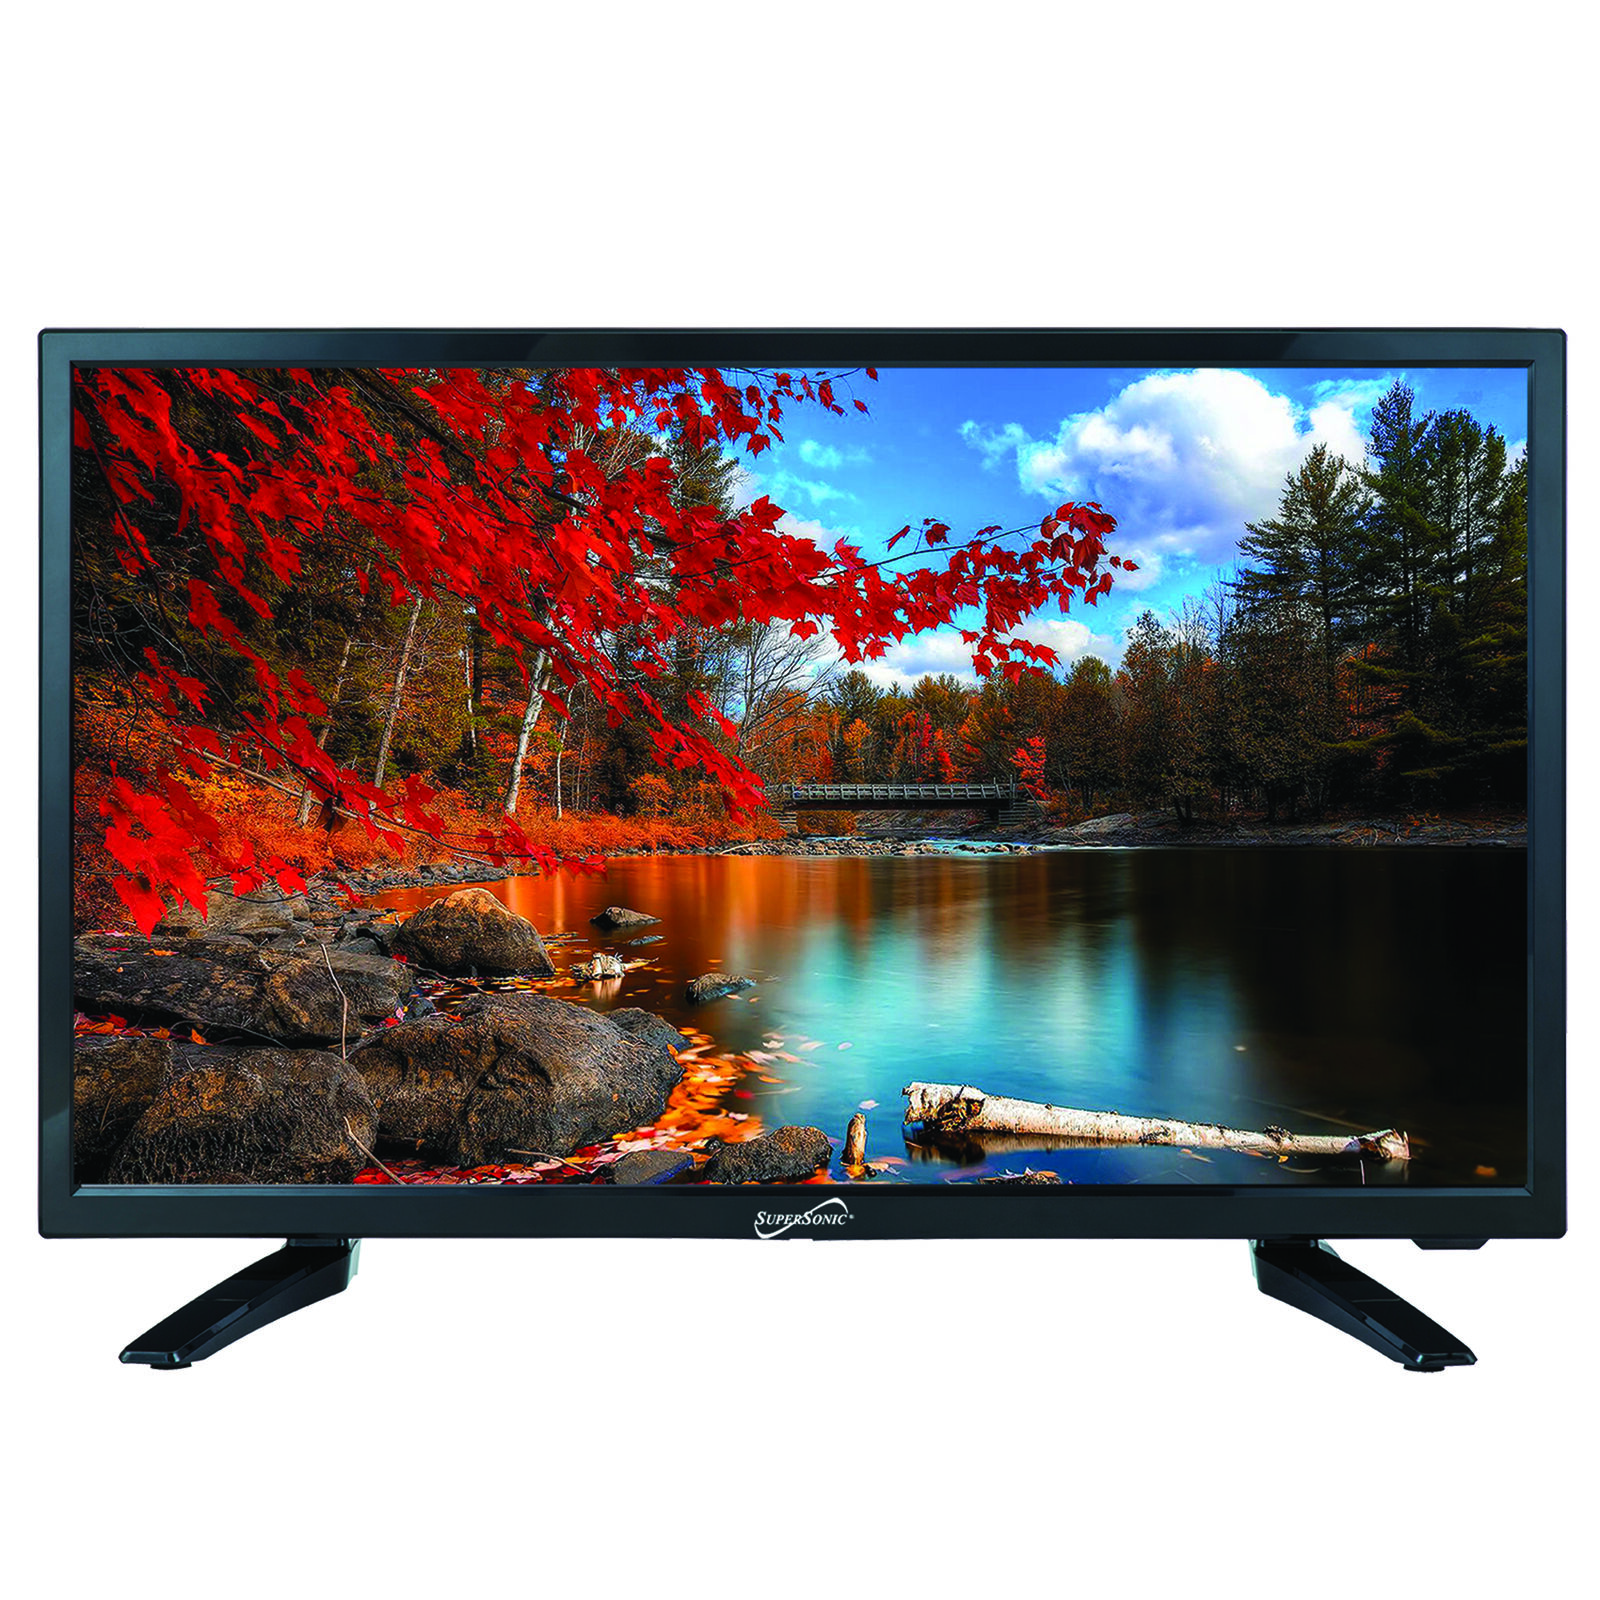 Supersonic 13.3 Inch 1080p LED Widescreen HDTV,HDMI,AC//DC CompatibleSC-1311